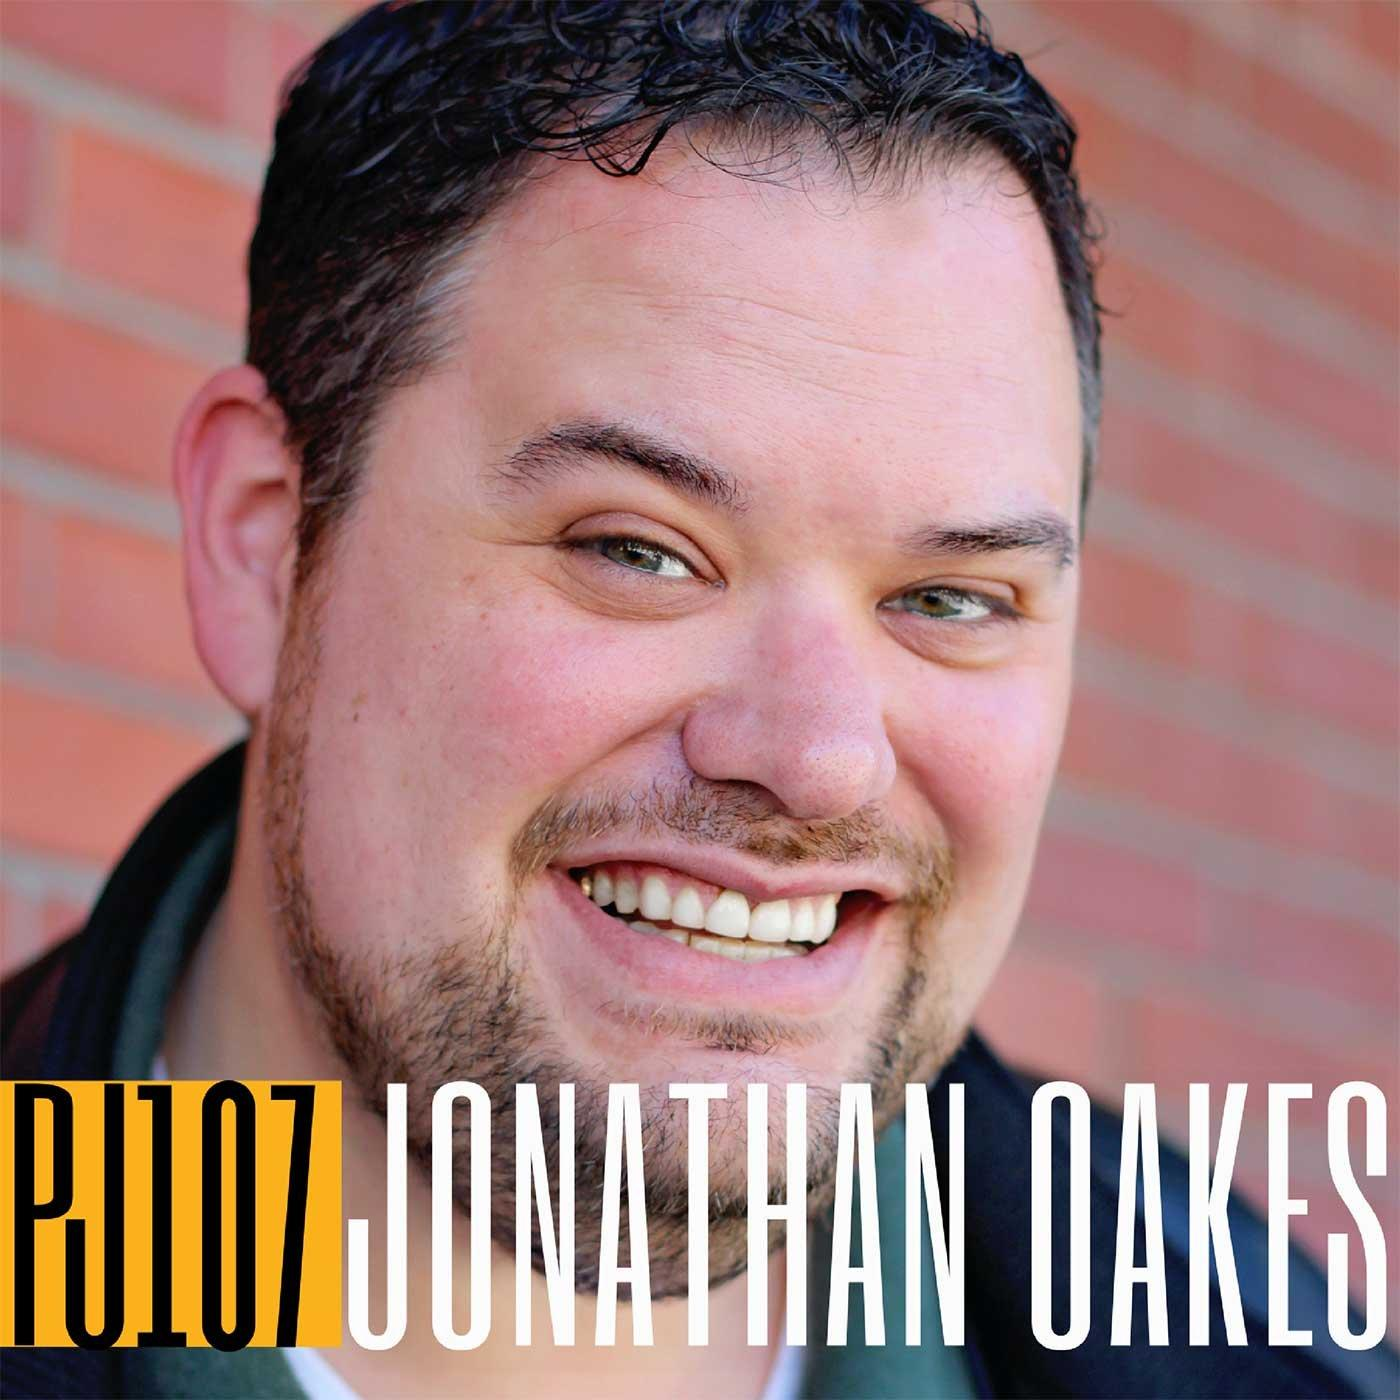 107 Jonathan Oakes | An Interactive Podcast About Trivia